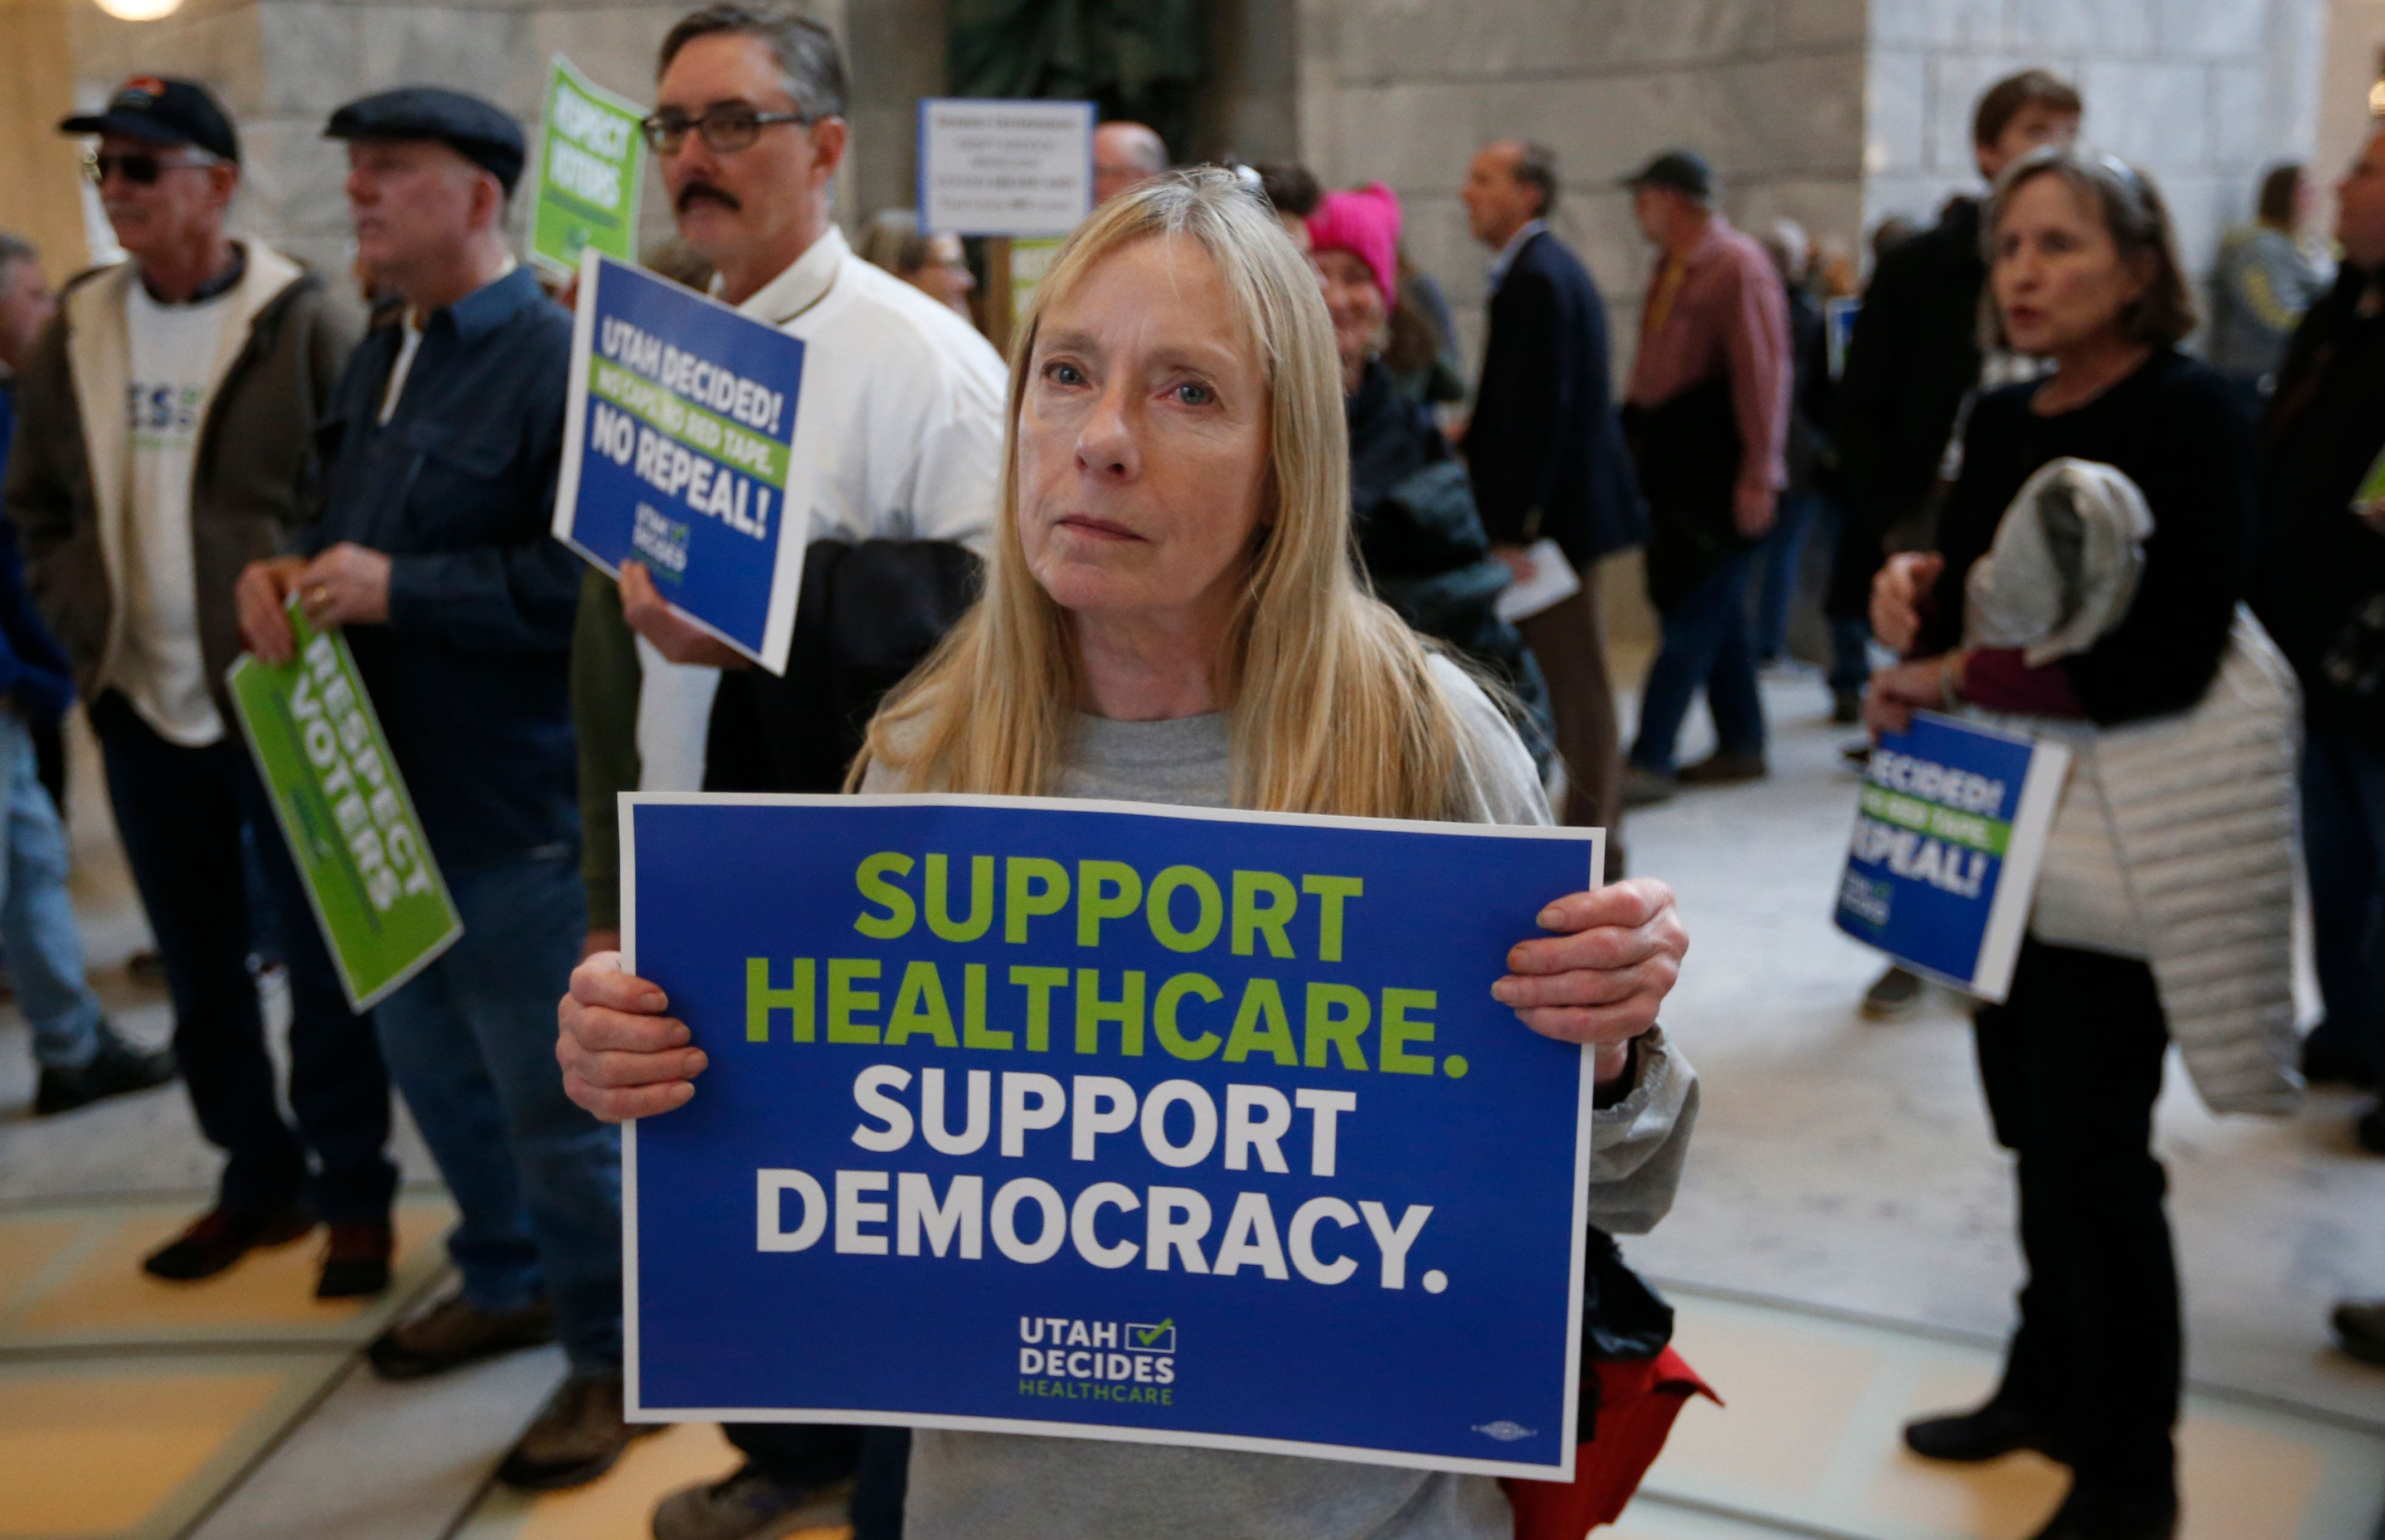 These Citizen Activists Fought Hard to Expand Health Care. Then Their Lawmakers Rebuked Them.